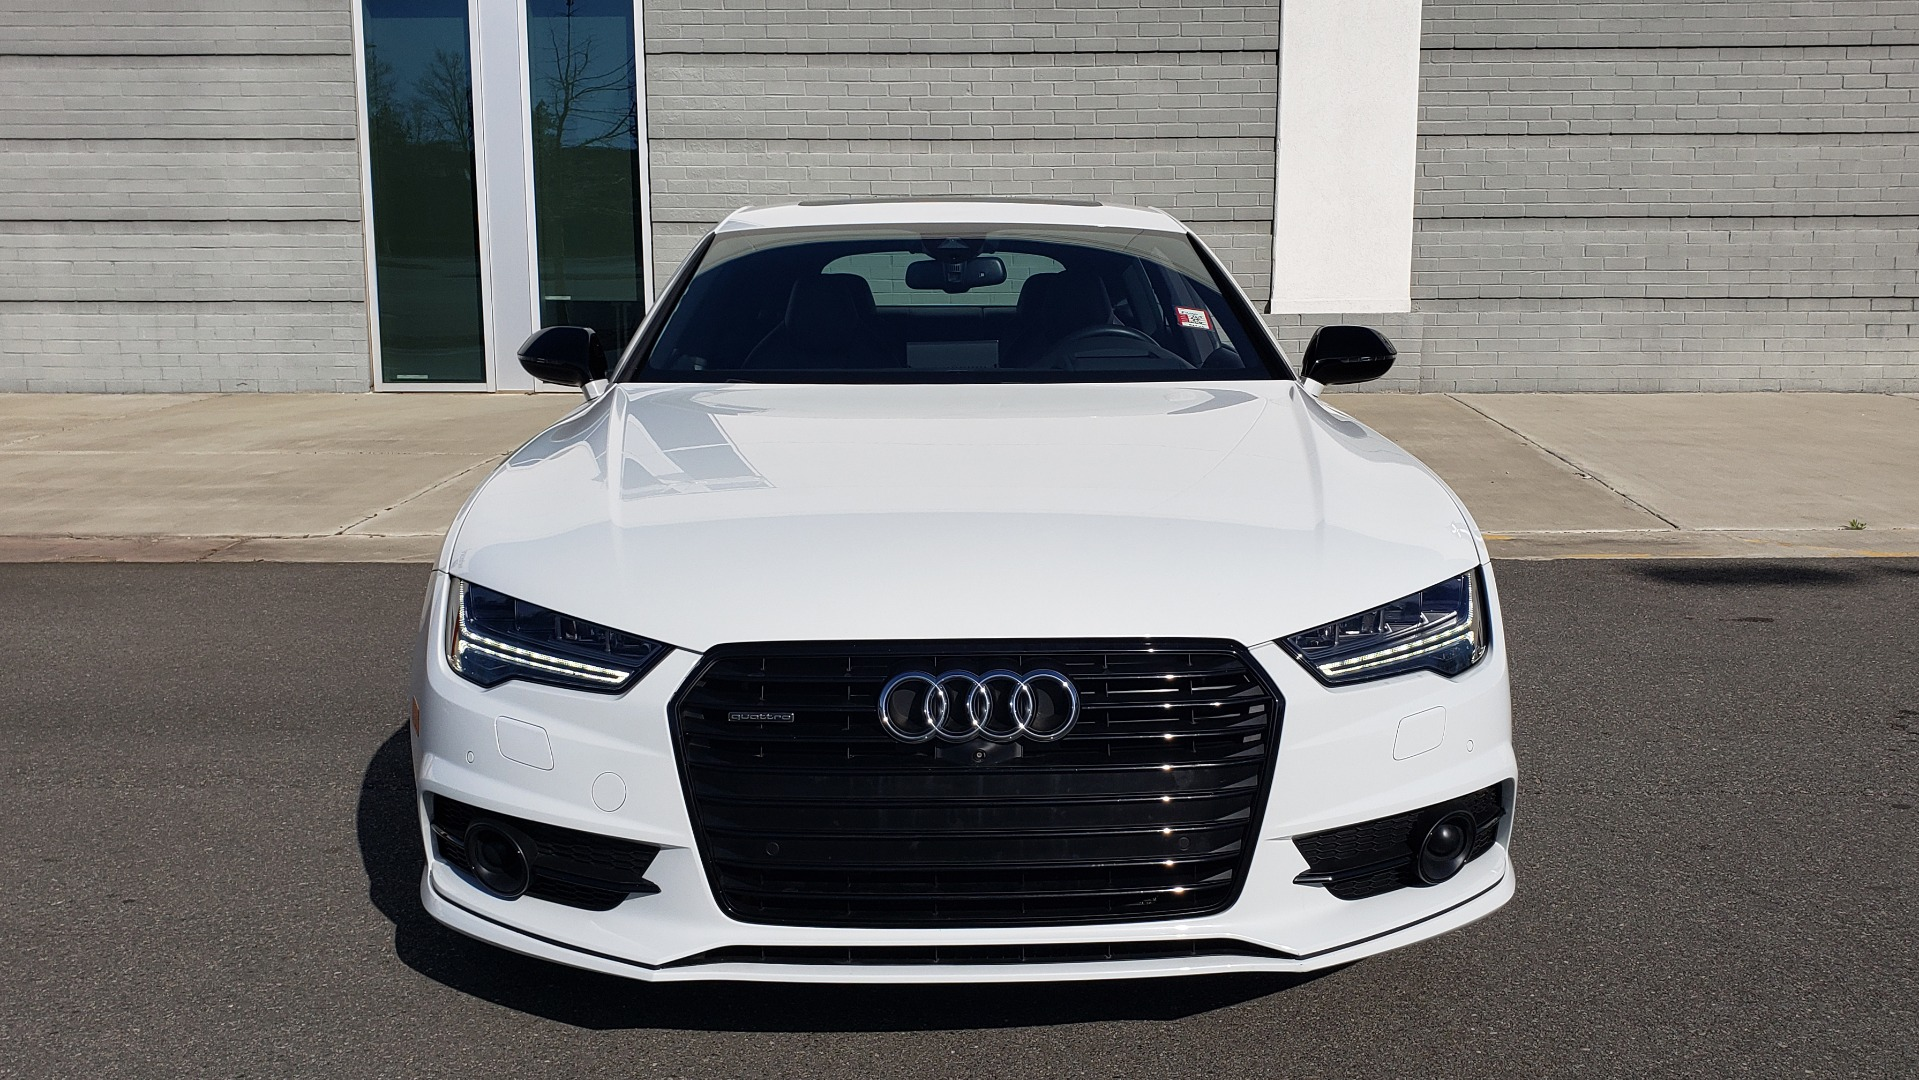 Used 2017 Audi A7 COMPETITION PRESTIGE 3.0T / NAV / DRVR ASST / ADAPT CRUISE for sale $41,995 at Formula Imports in Charlotte NC 28227 23